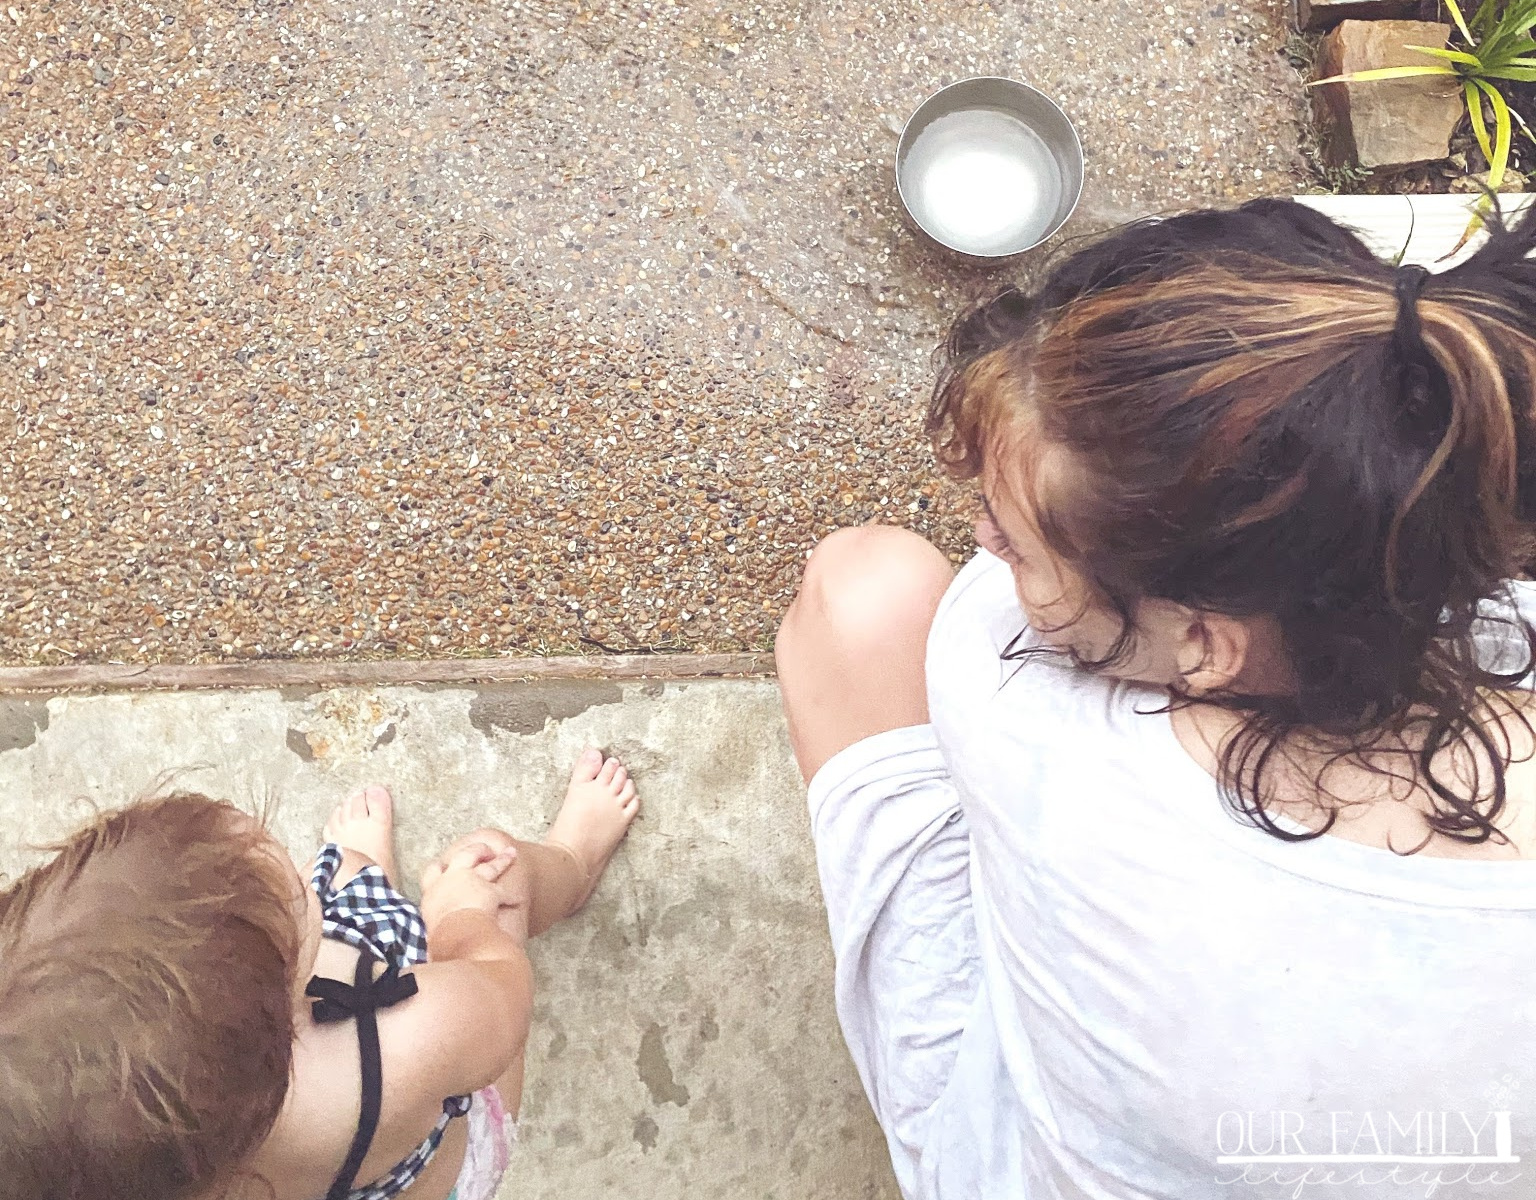 Our Family's Stay at Home Activities Week 23 in Pictures